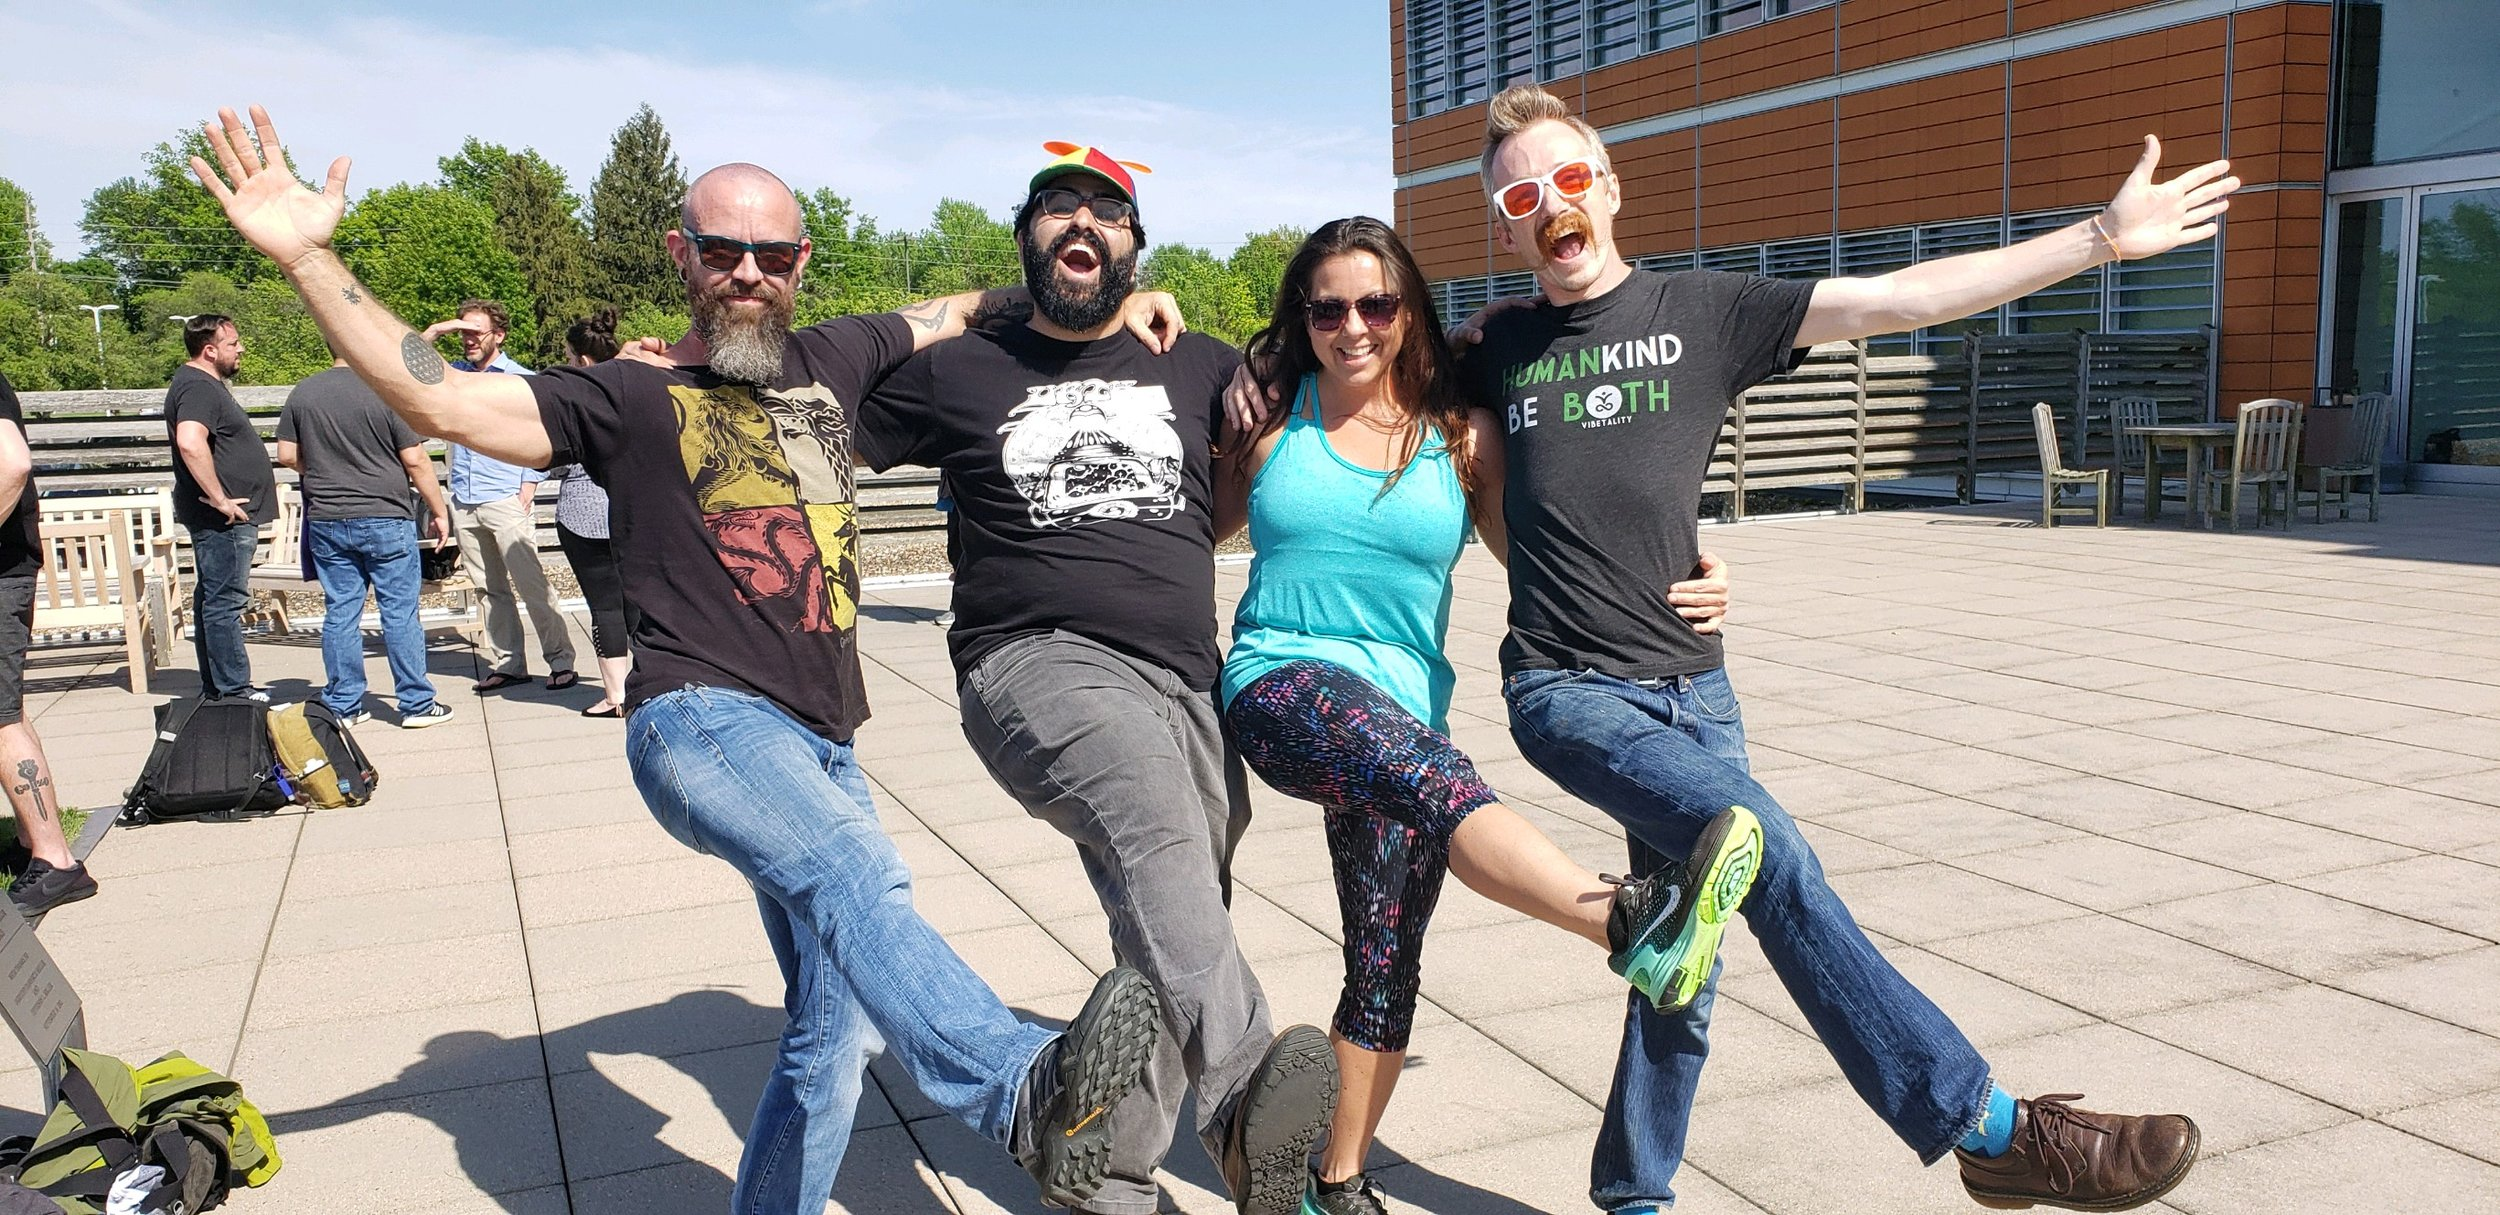 Christy and I captured a fun moment with Graham and Ashkan from Float On, Lavern and Shirley style.